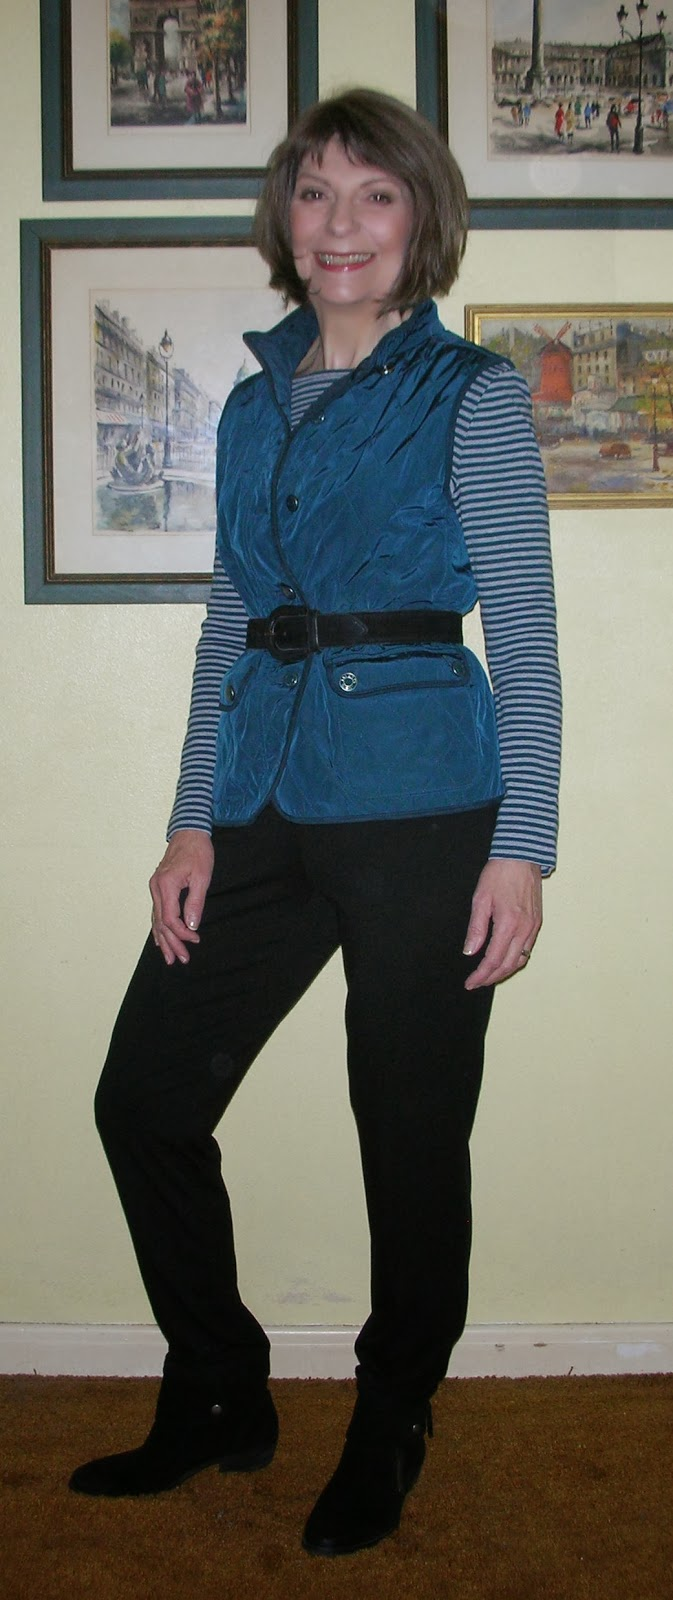 dd1138c414 T-shirt  Talbots Vest  Talbots Pants  J.Jill Belt  80 s and unmarked.  Boots  Nine West Vintage America Collection